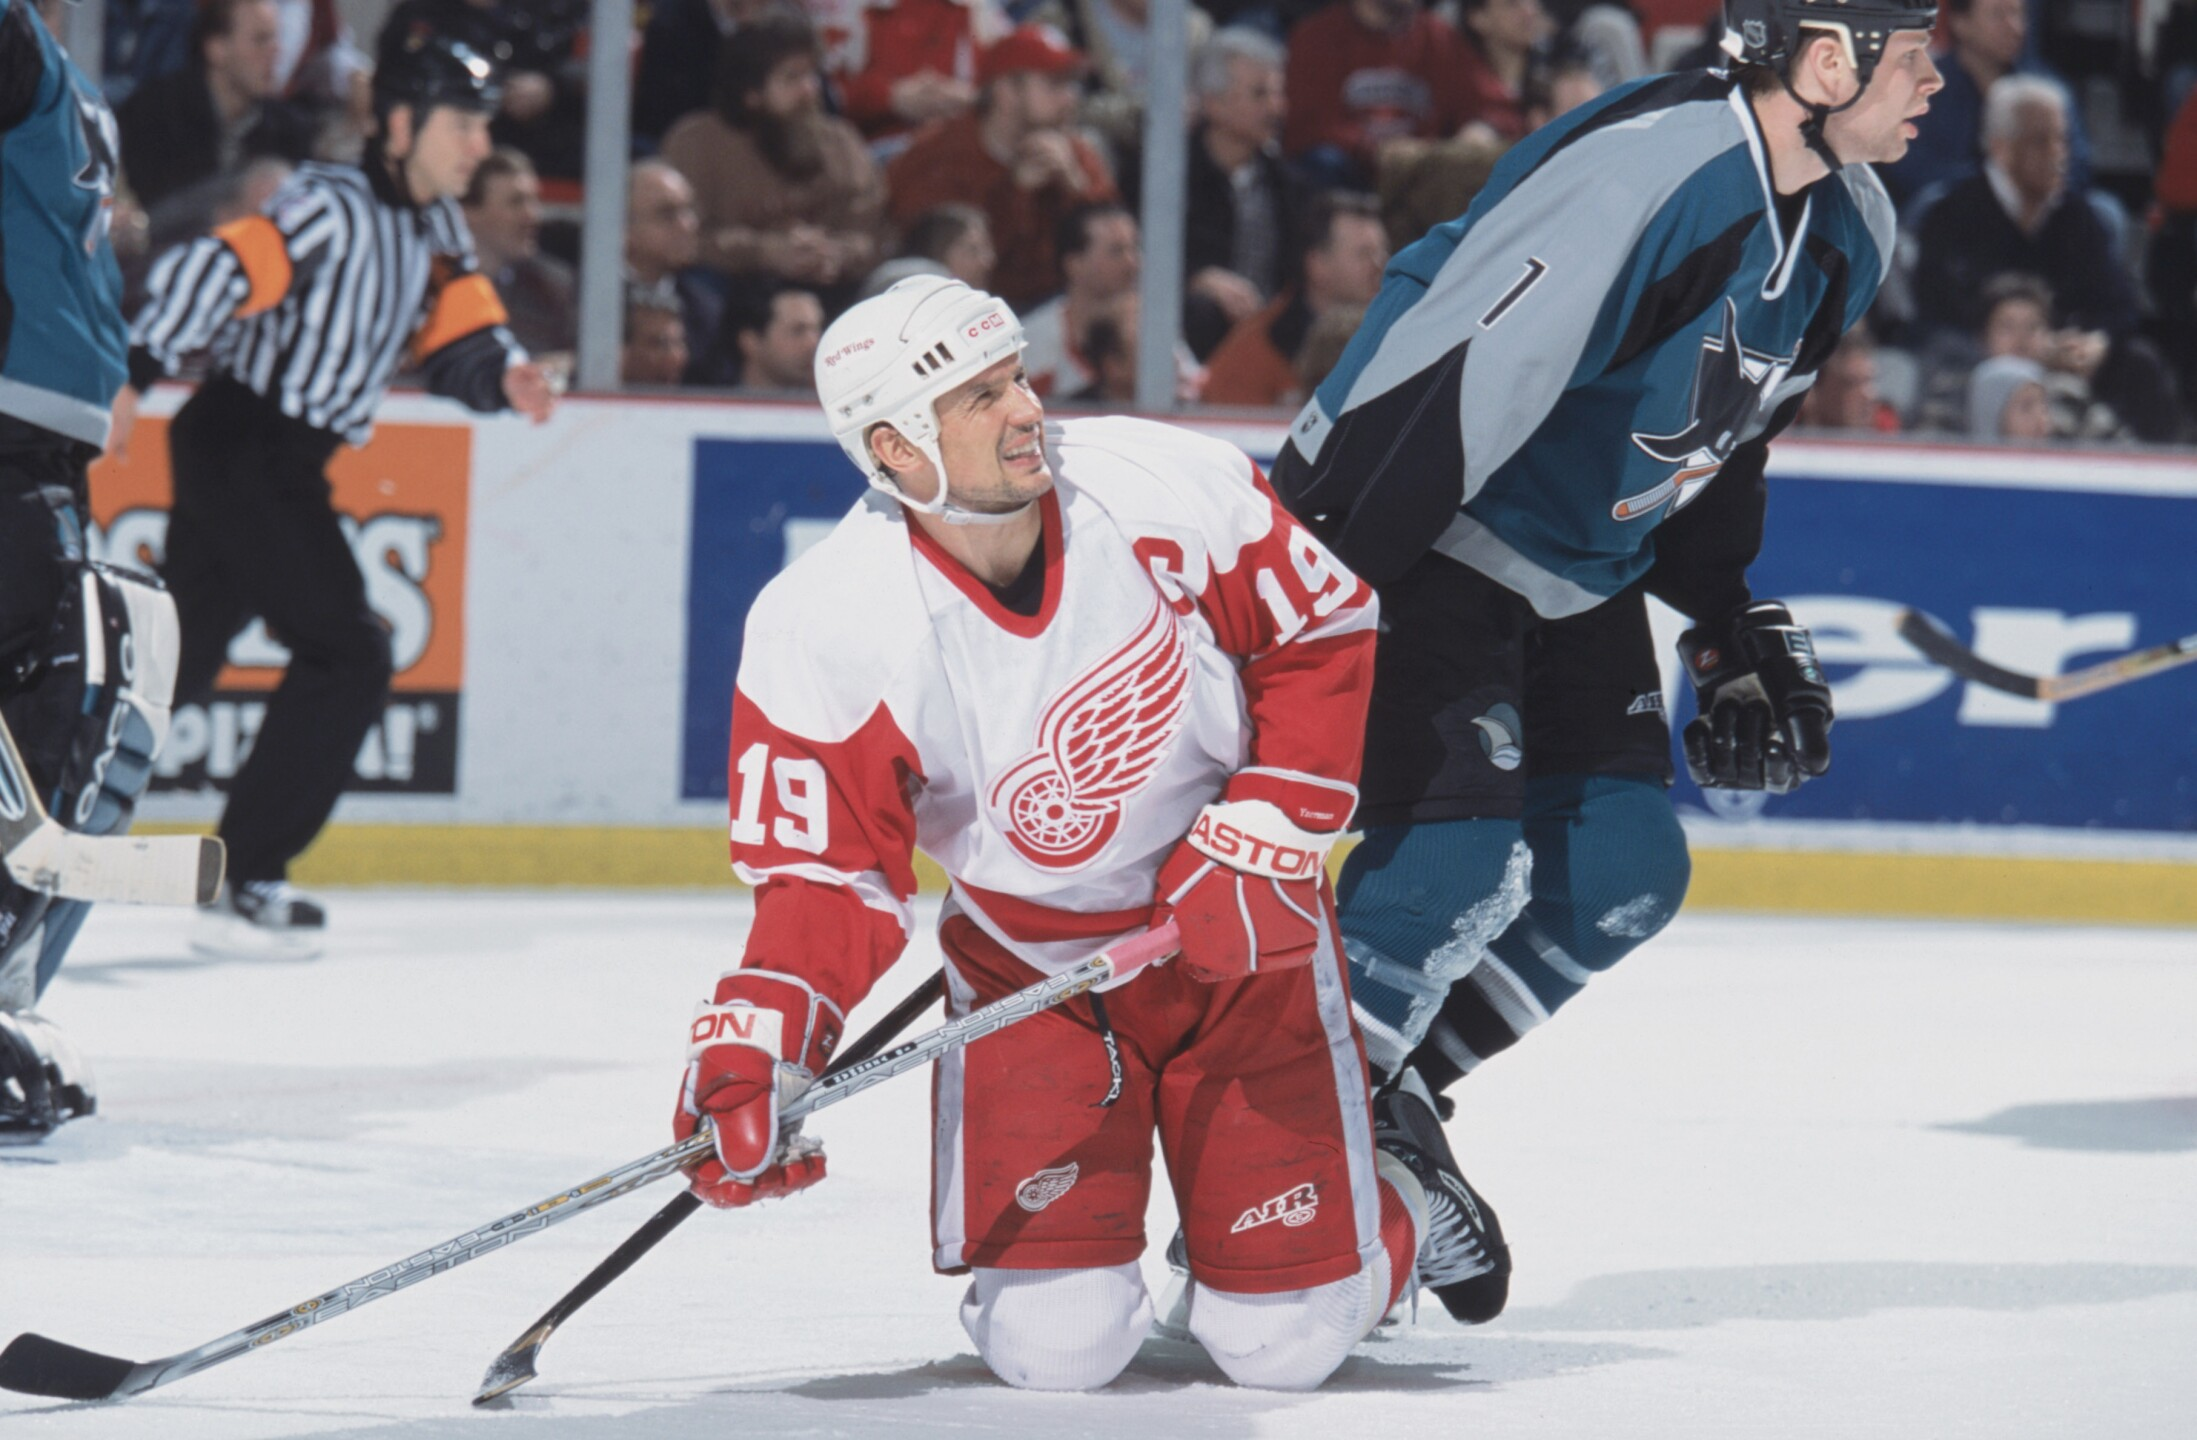 Steve Yzerman grimaces while on his knees